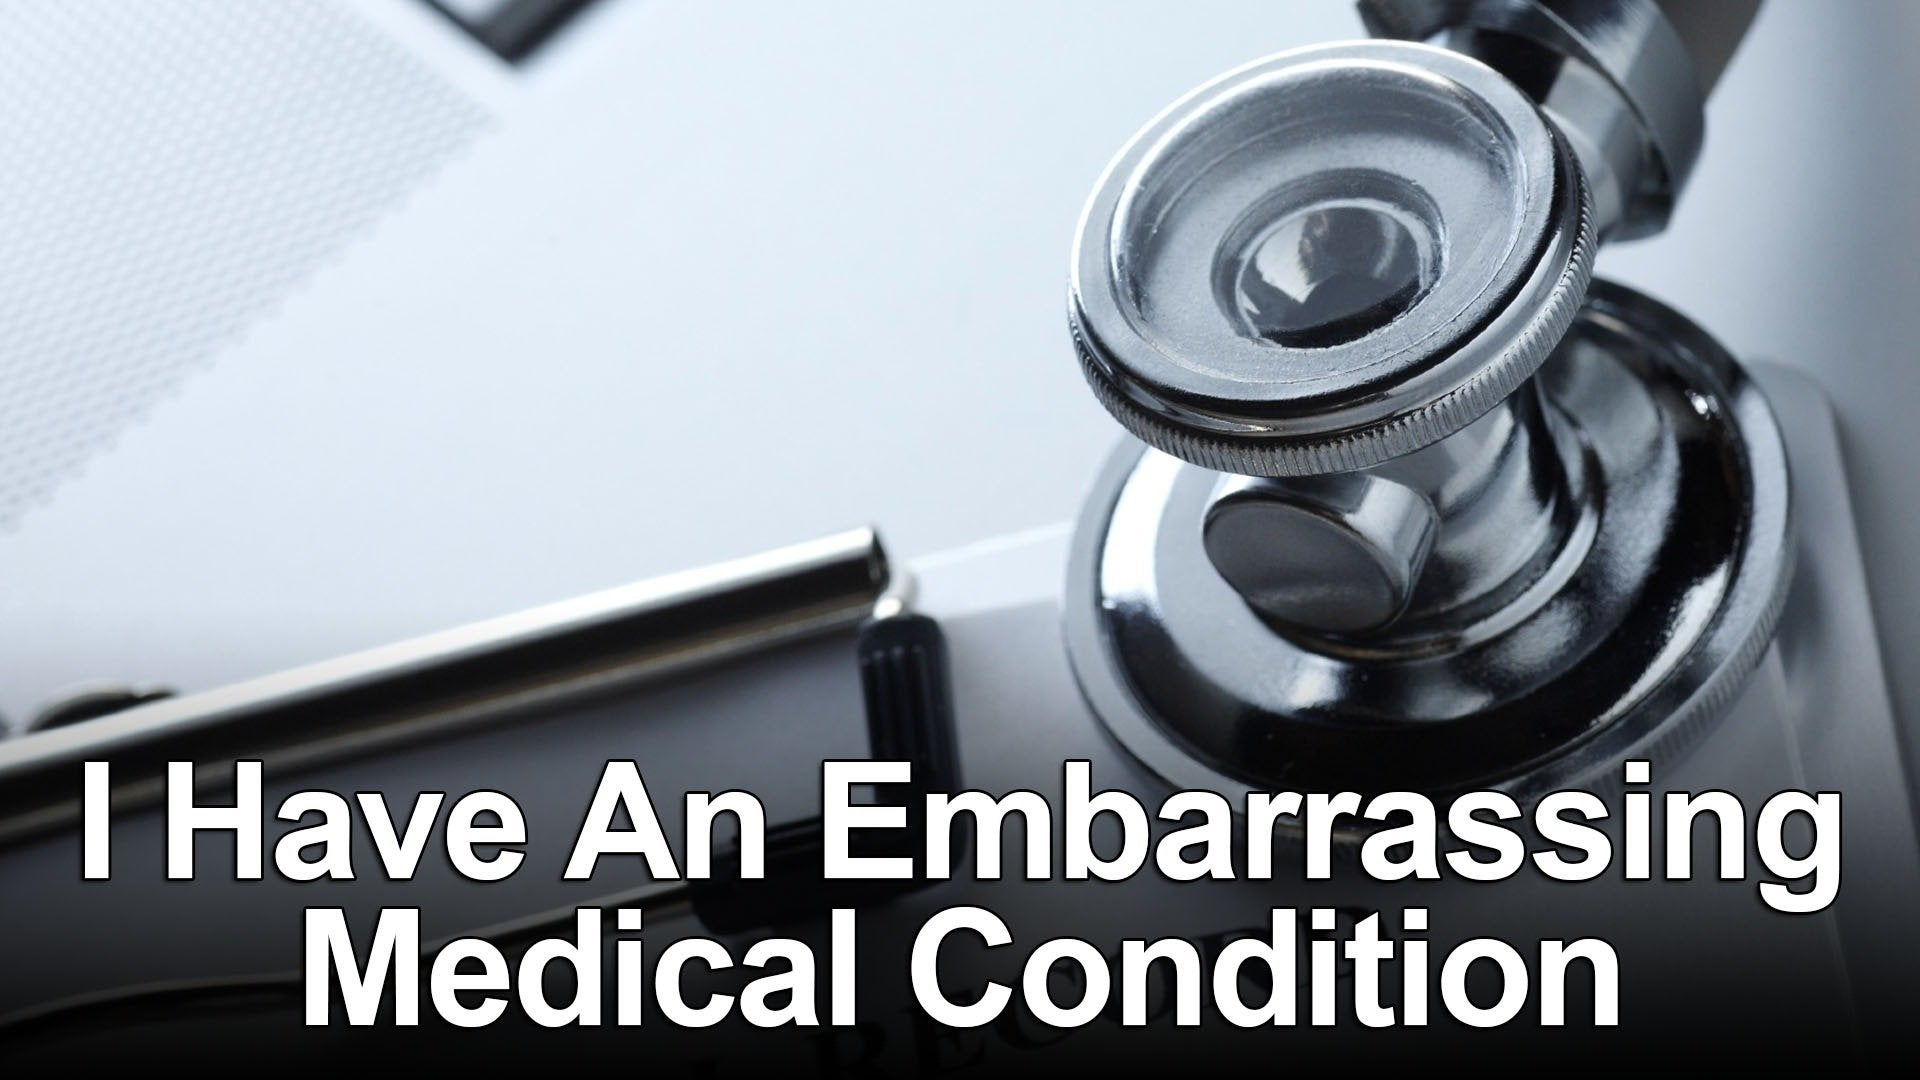 I Have An Embarrassing Medical Condition